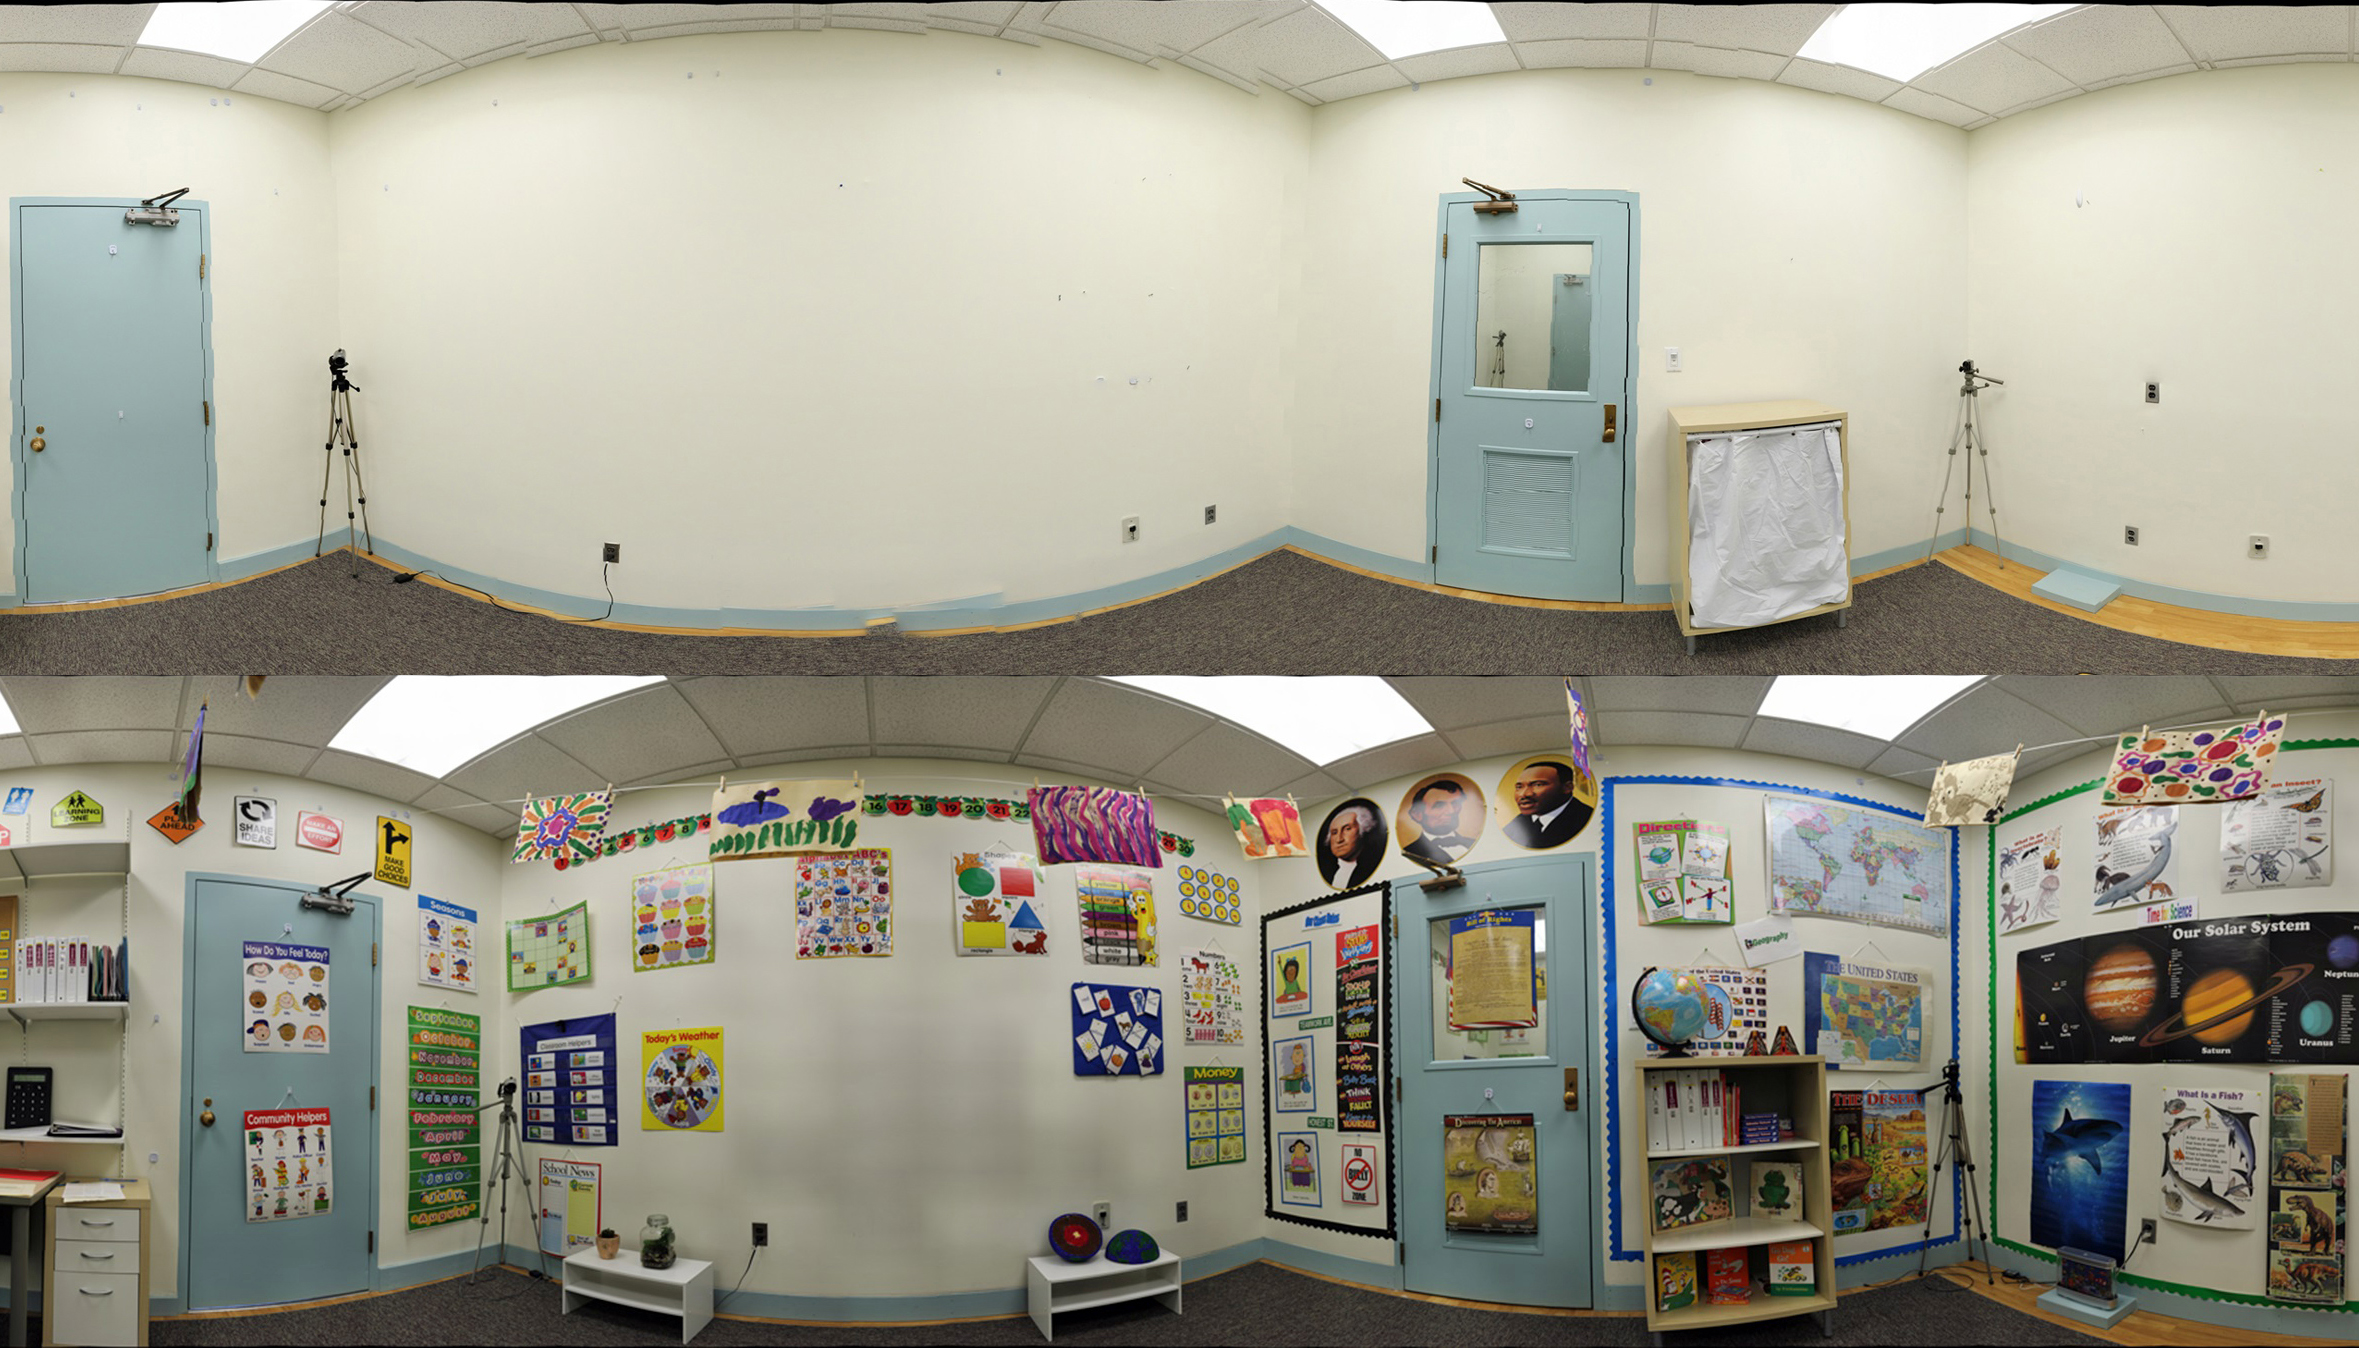 Classroom Design Research ~ Press release heavily decorated classrooms disrupt